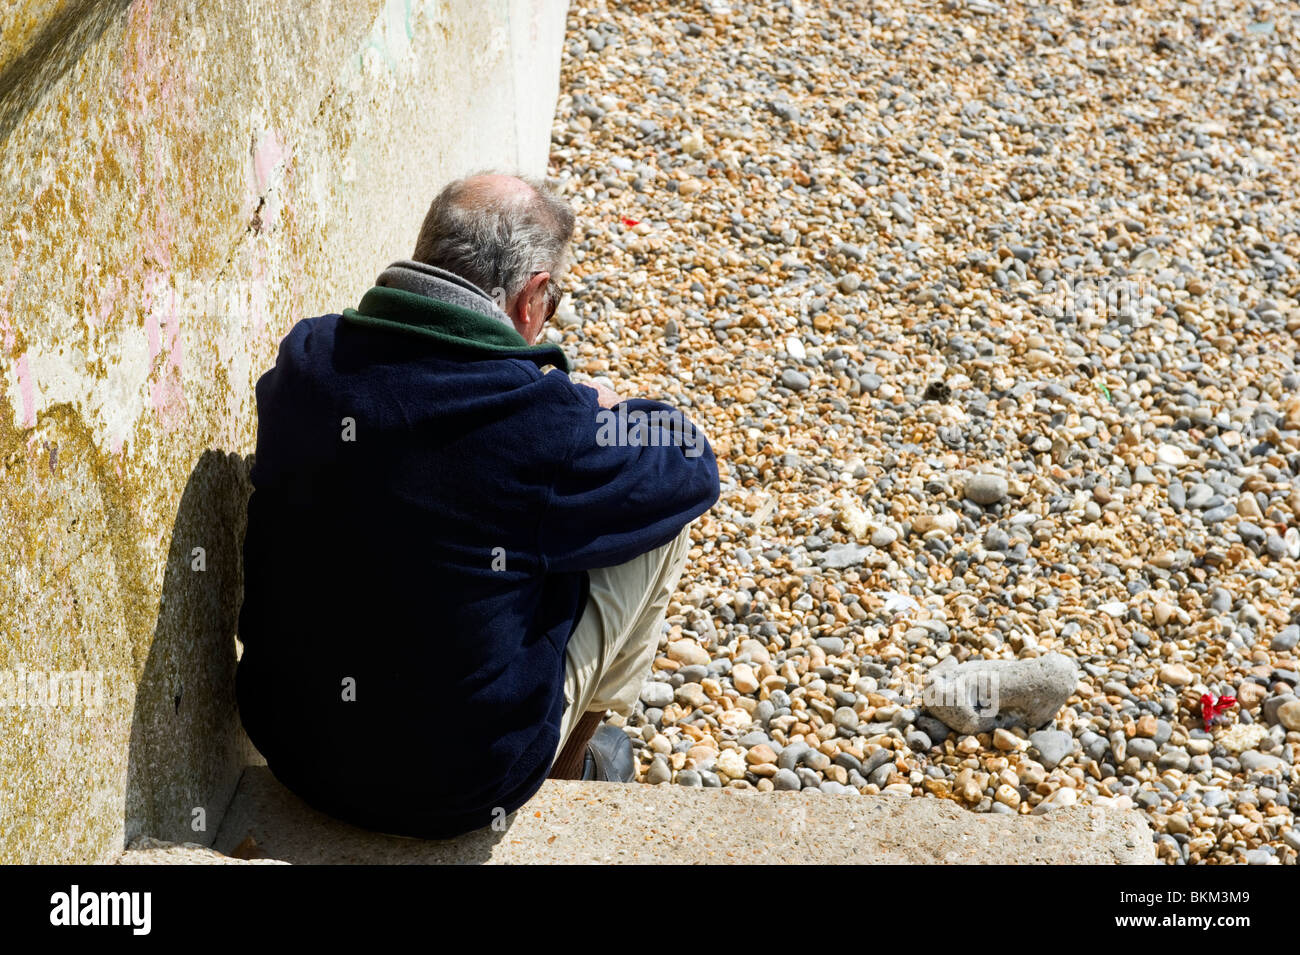 Sitting Hunched Stock Photos Sitting Hunched Stock Images Alamy